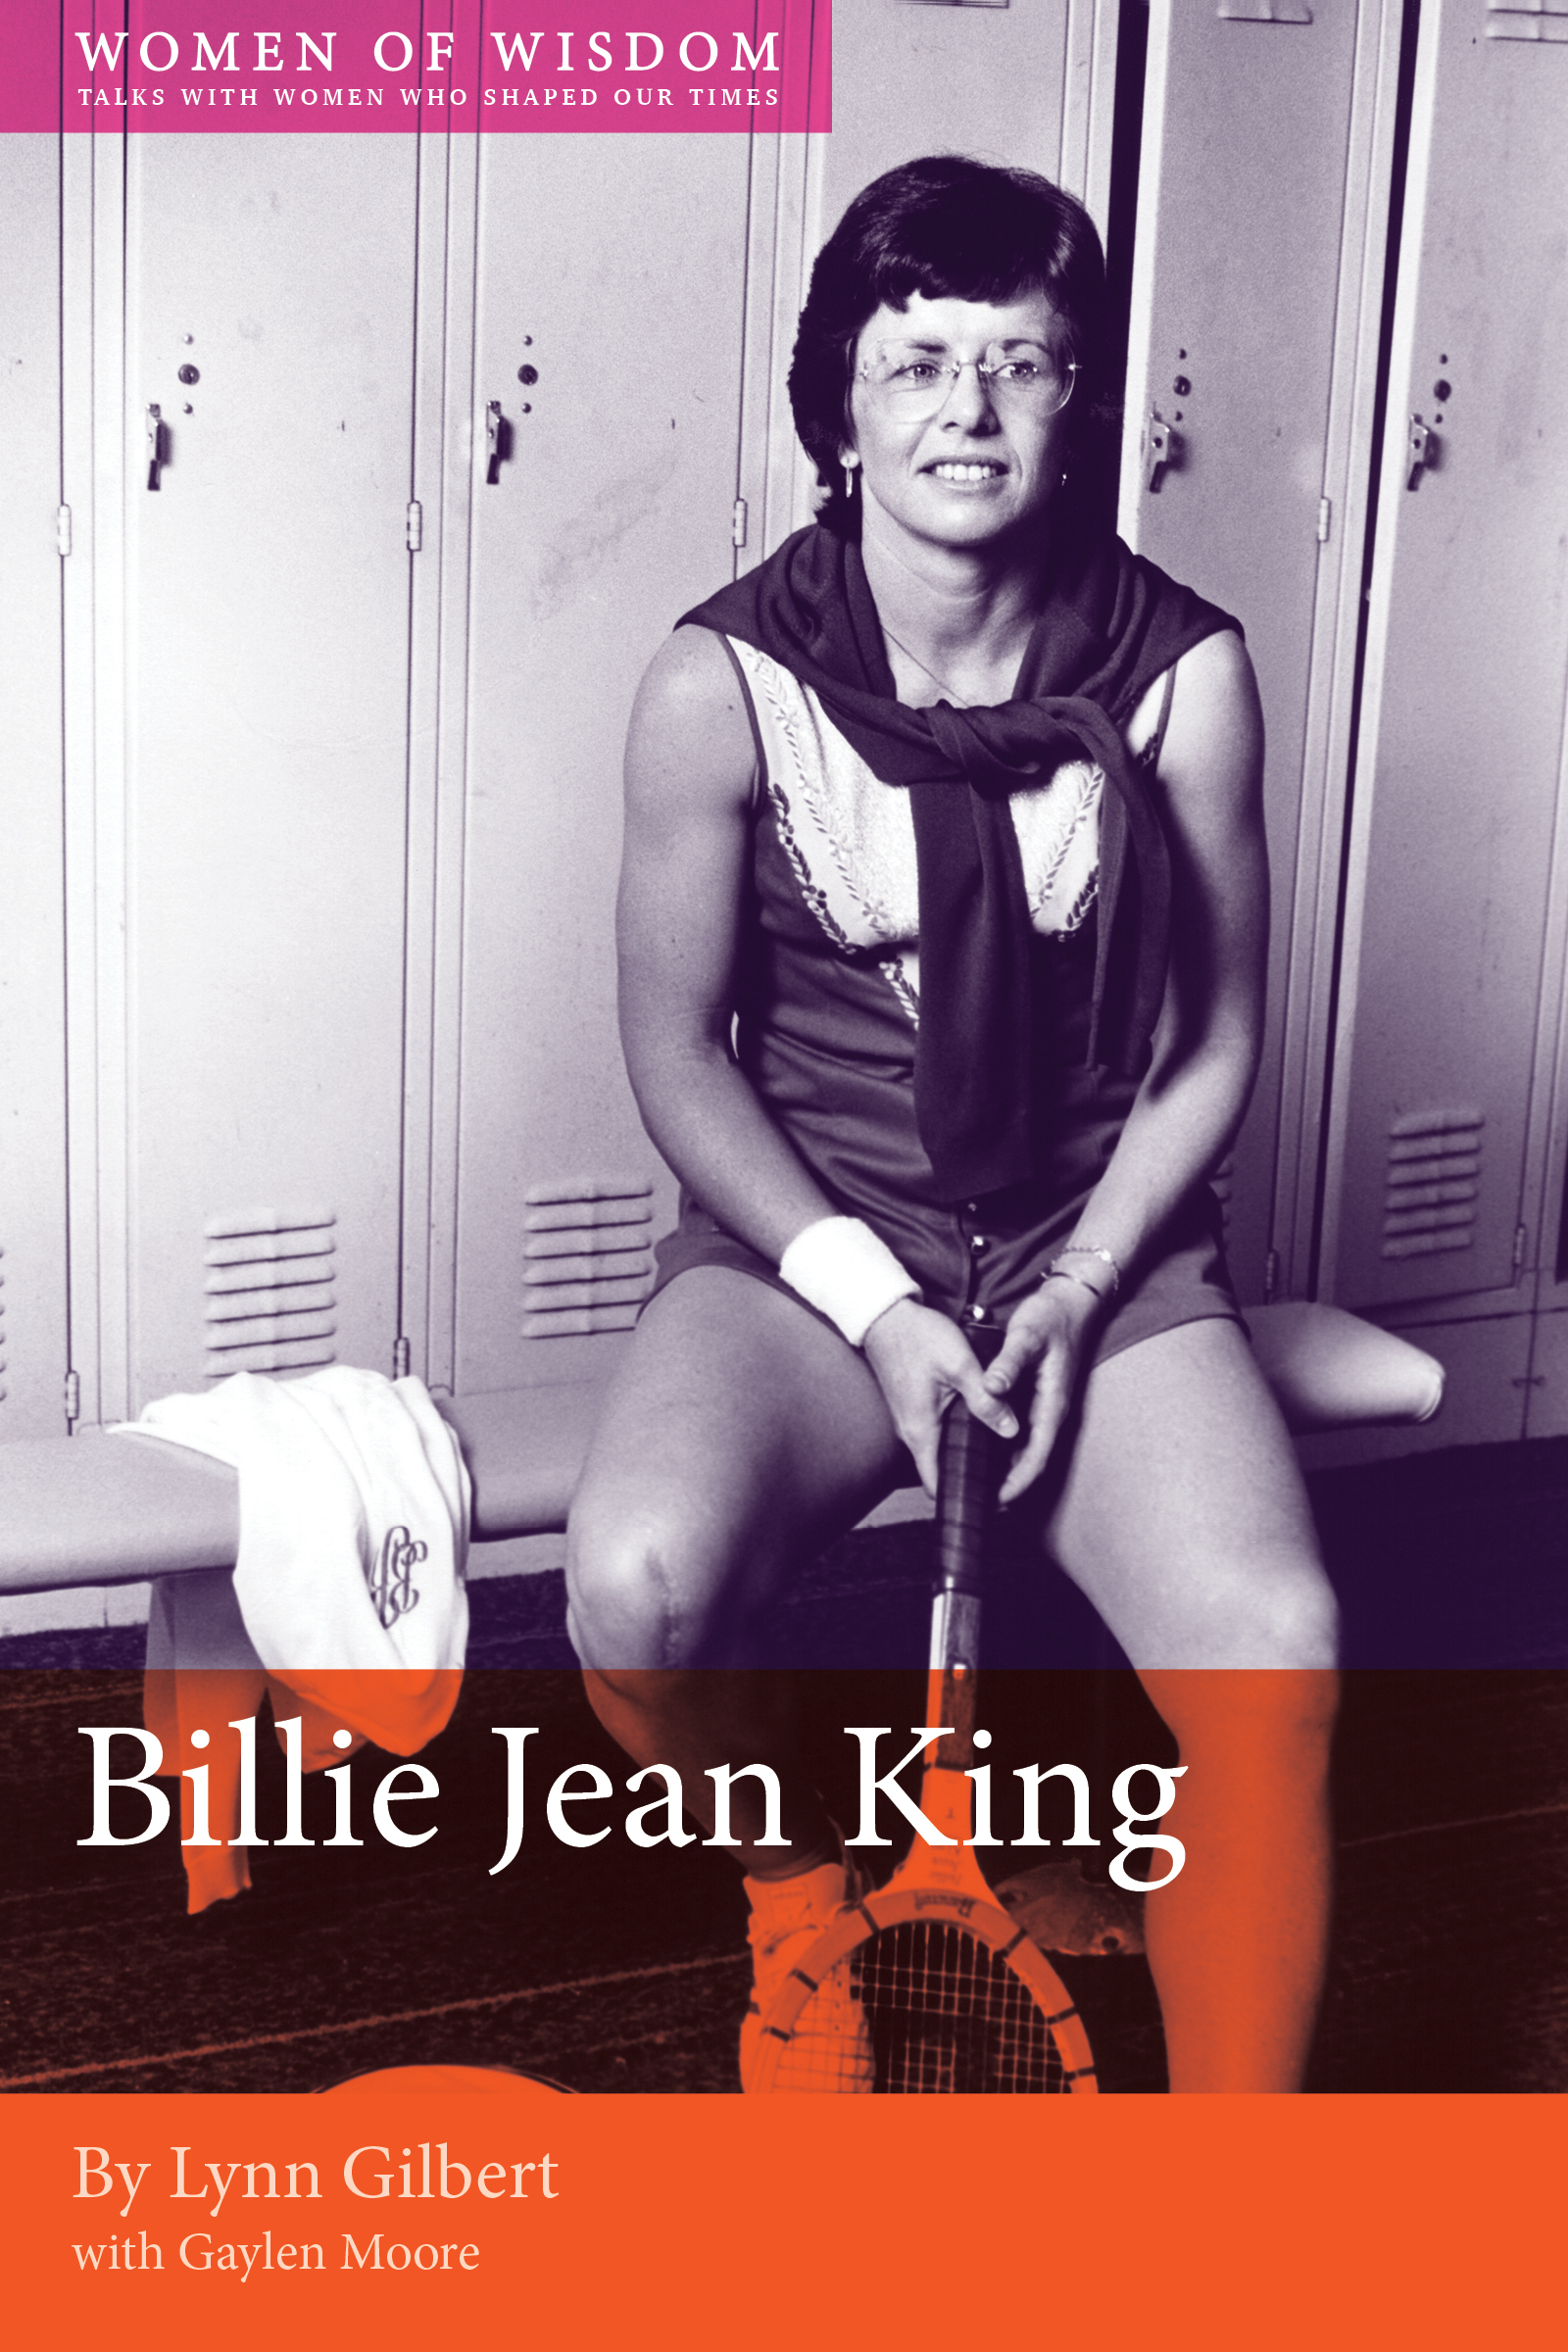 Billie_Jean_King_Photographed_by_Lynn_Gilbert_©_1981_Particular_Passions